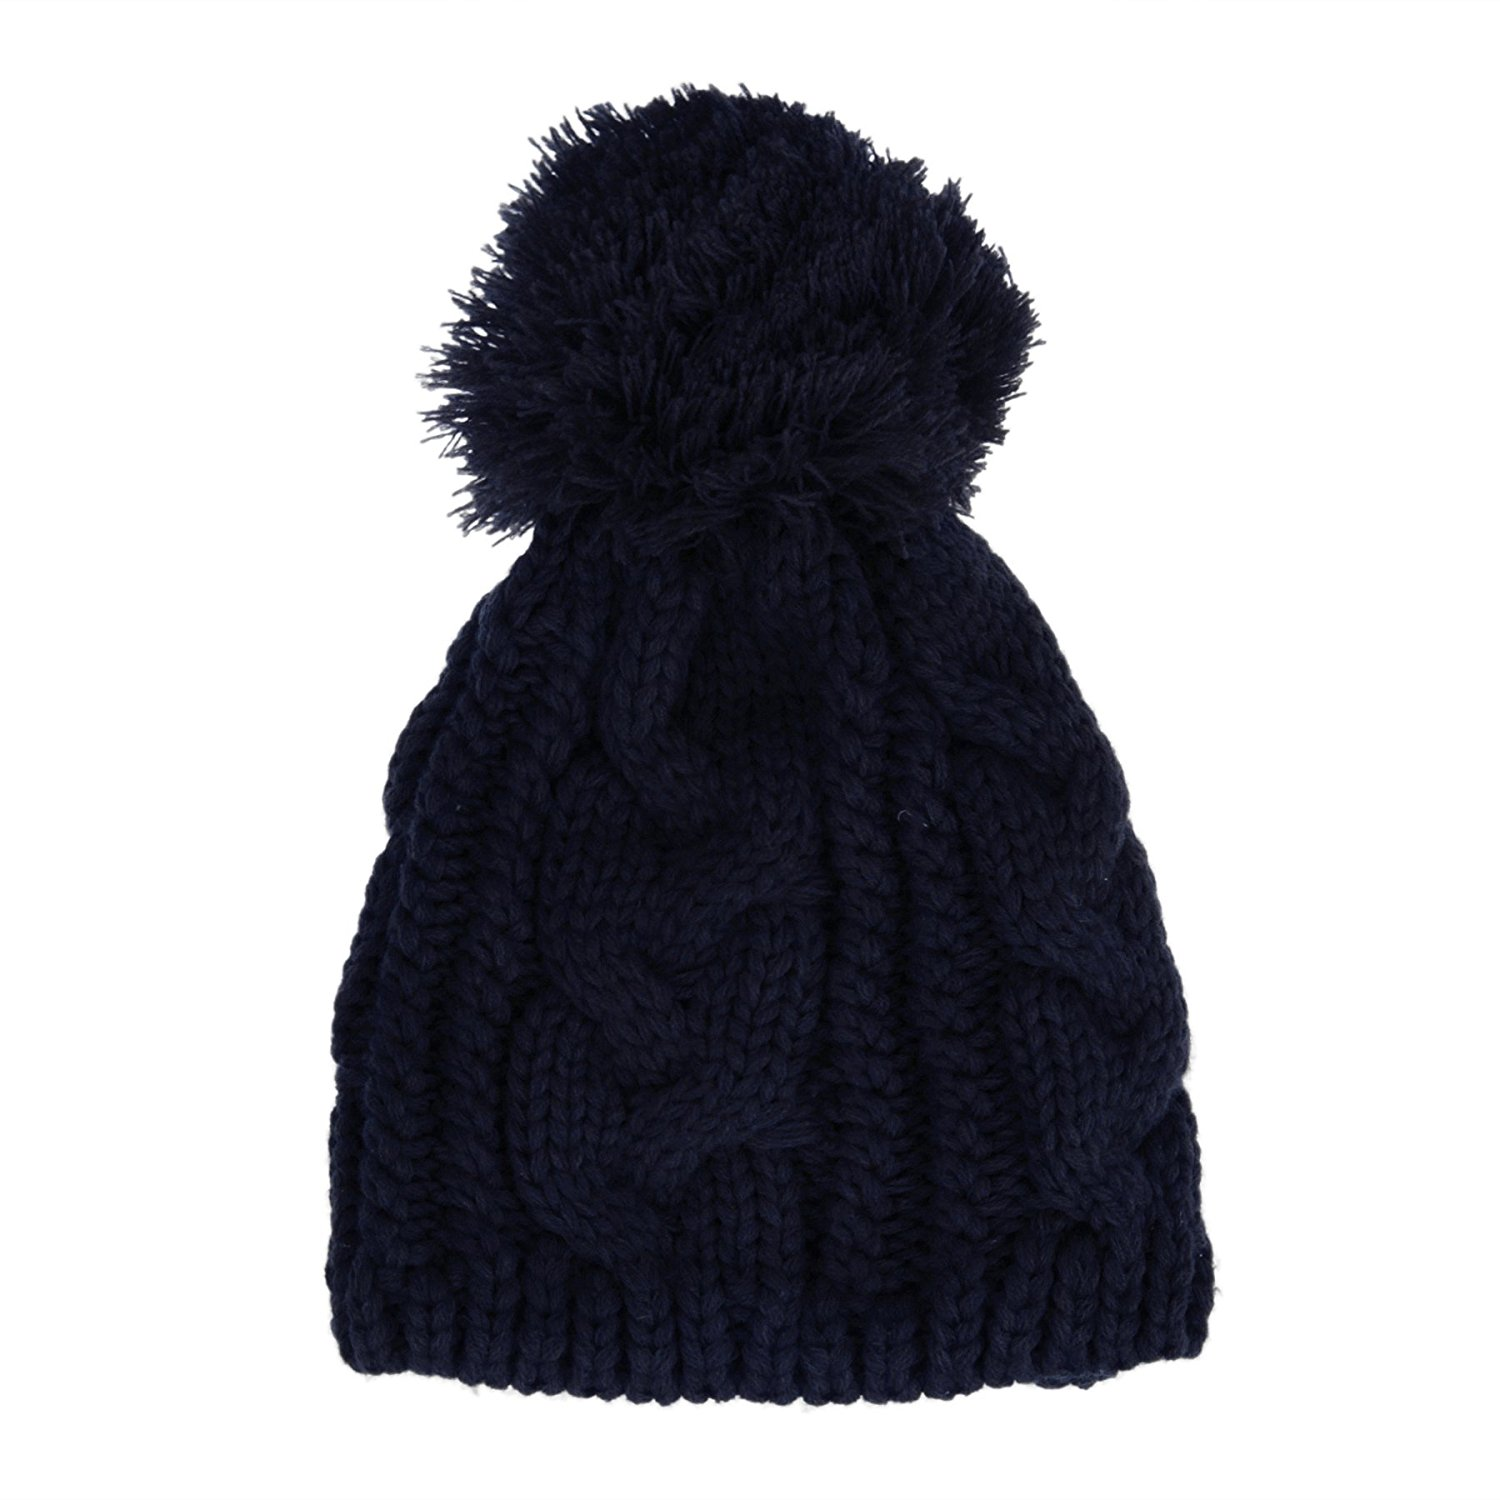 Unisex Fashion Wool Knitted Hat Beanie Autumn Winter Warm Outdor Sports Camping Hiking Cycling Ski Caps Crochet Beanie Hats for Men Women